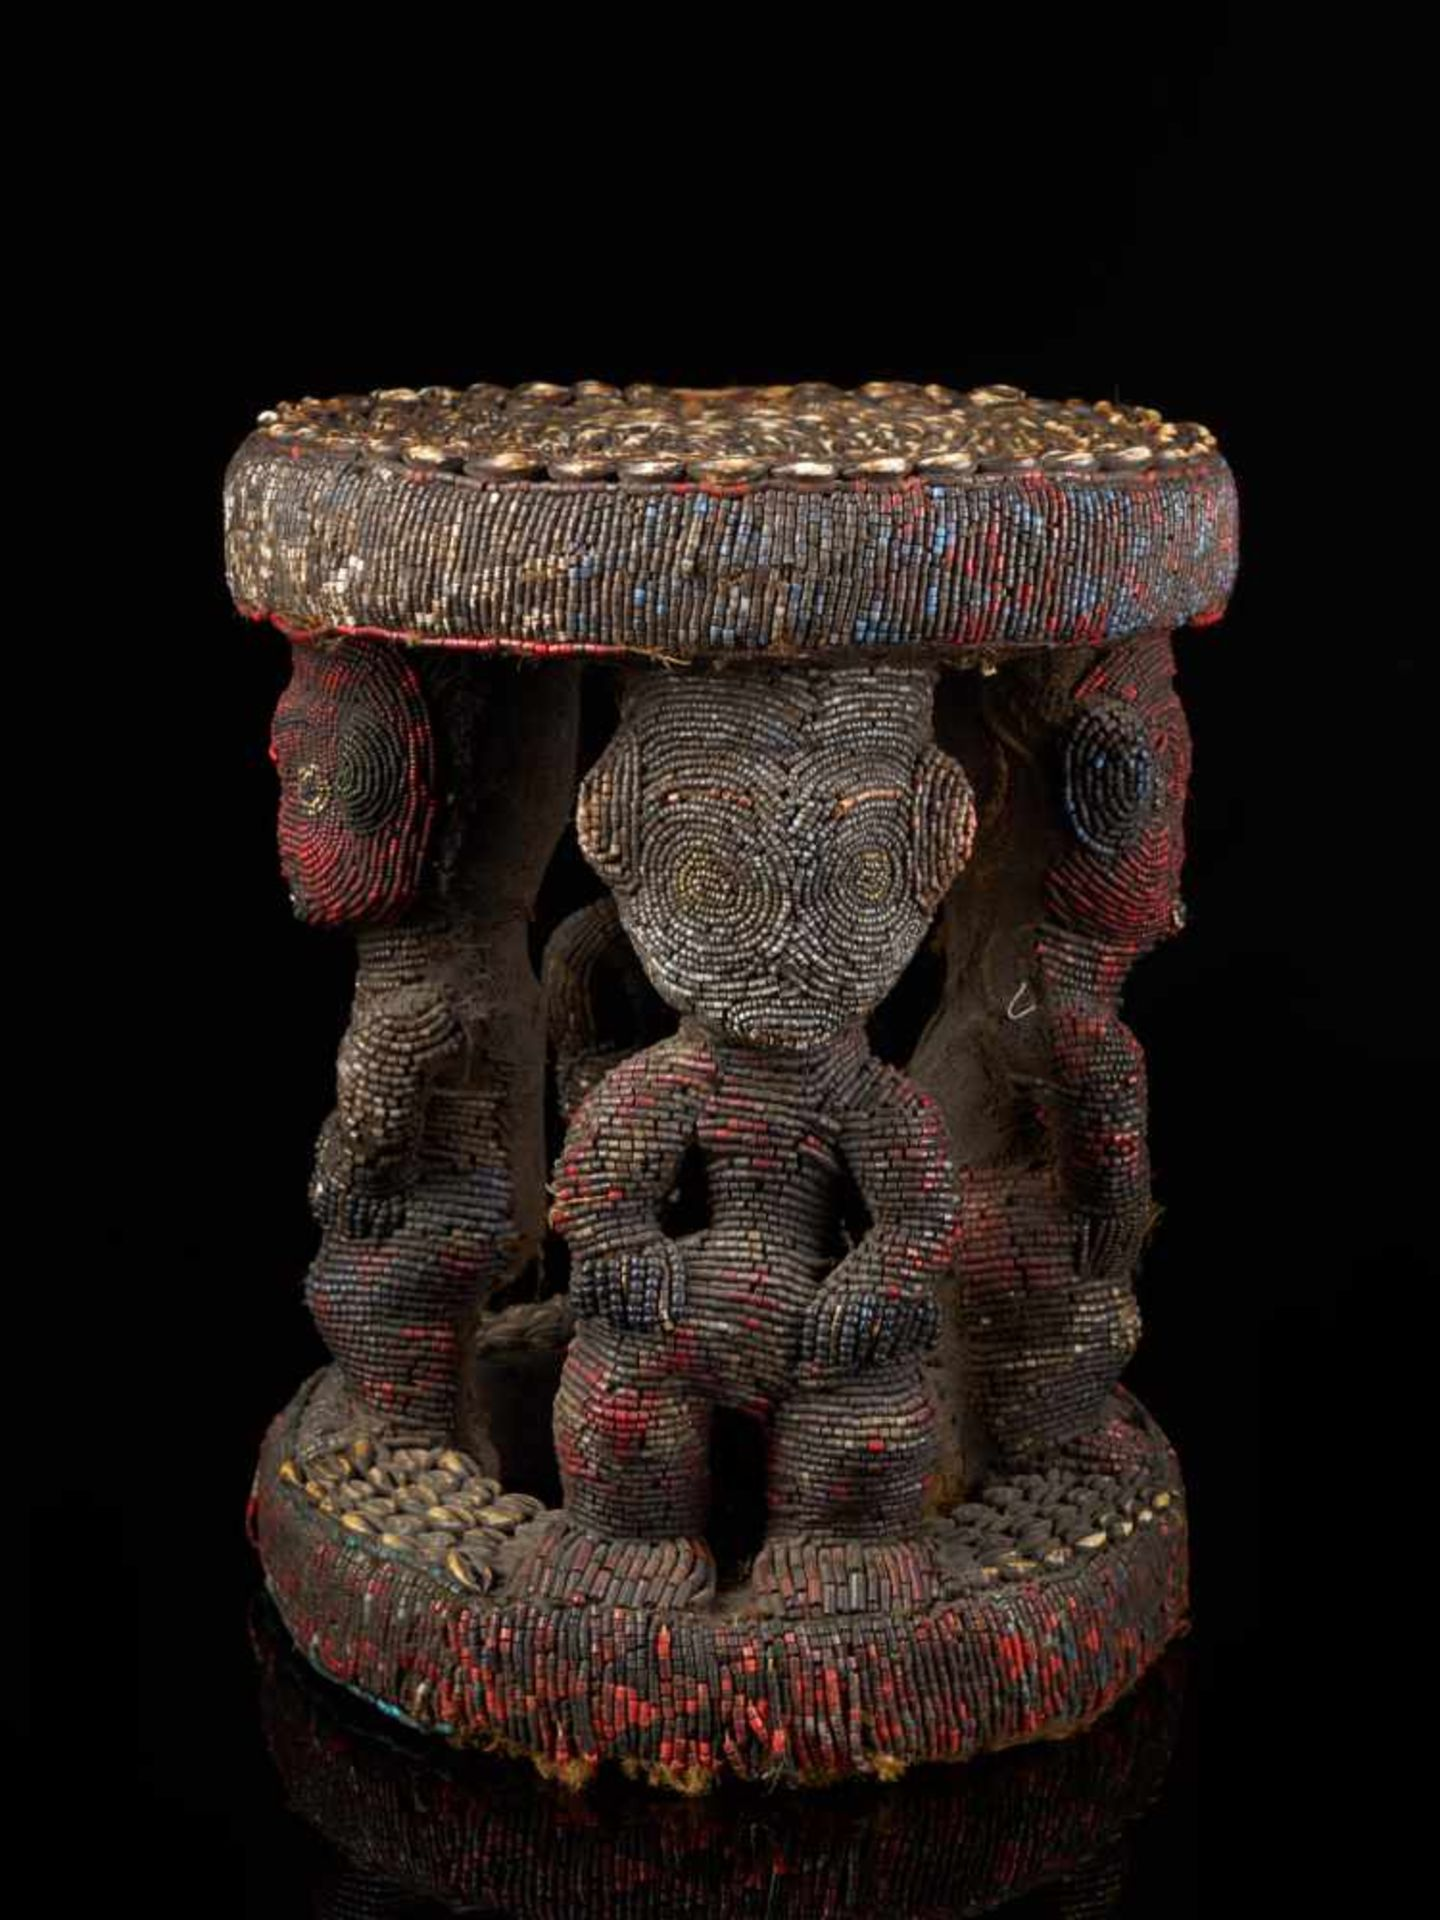 Beaded Royal Stool Supported By Four Figures - Tribal ArtThis stunning stool has a round base and - Bild 2 aus 7